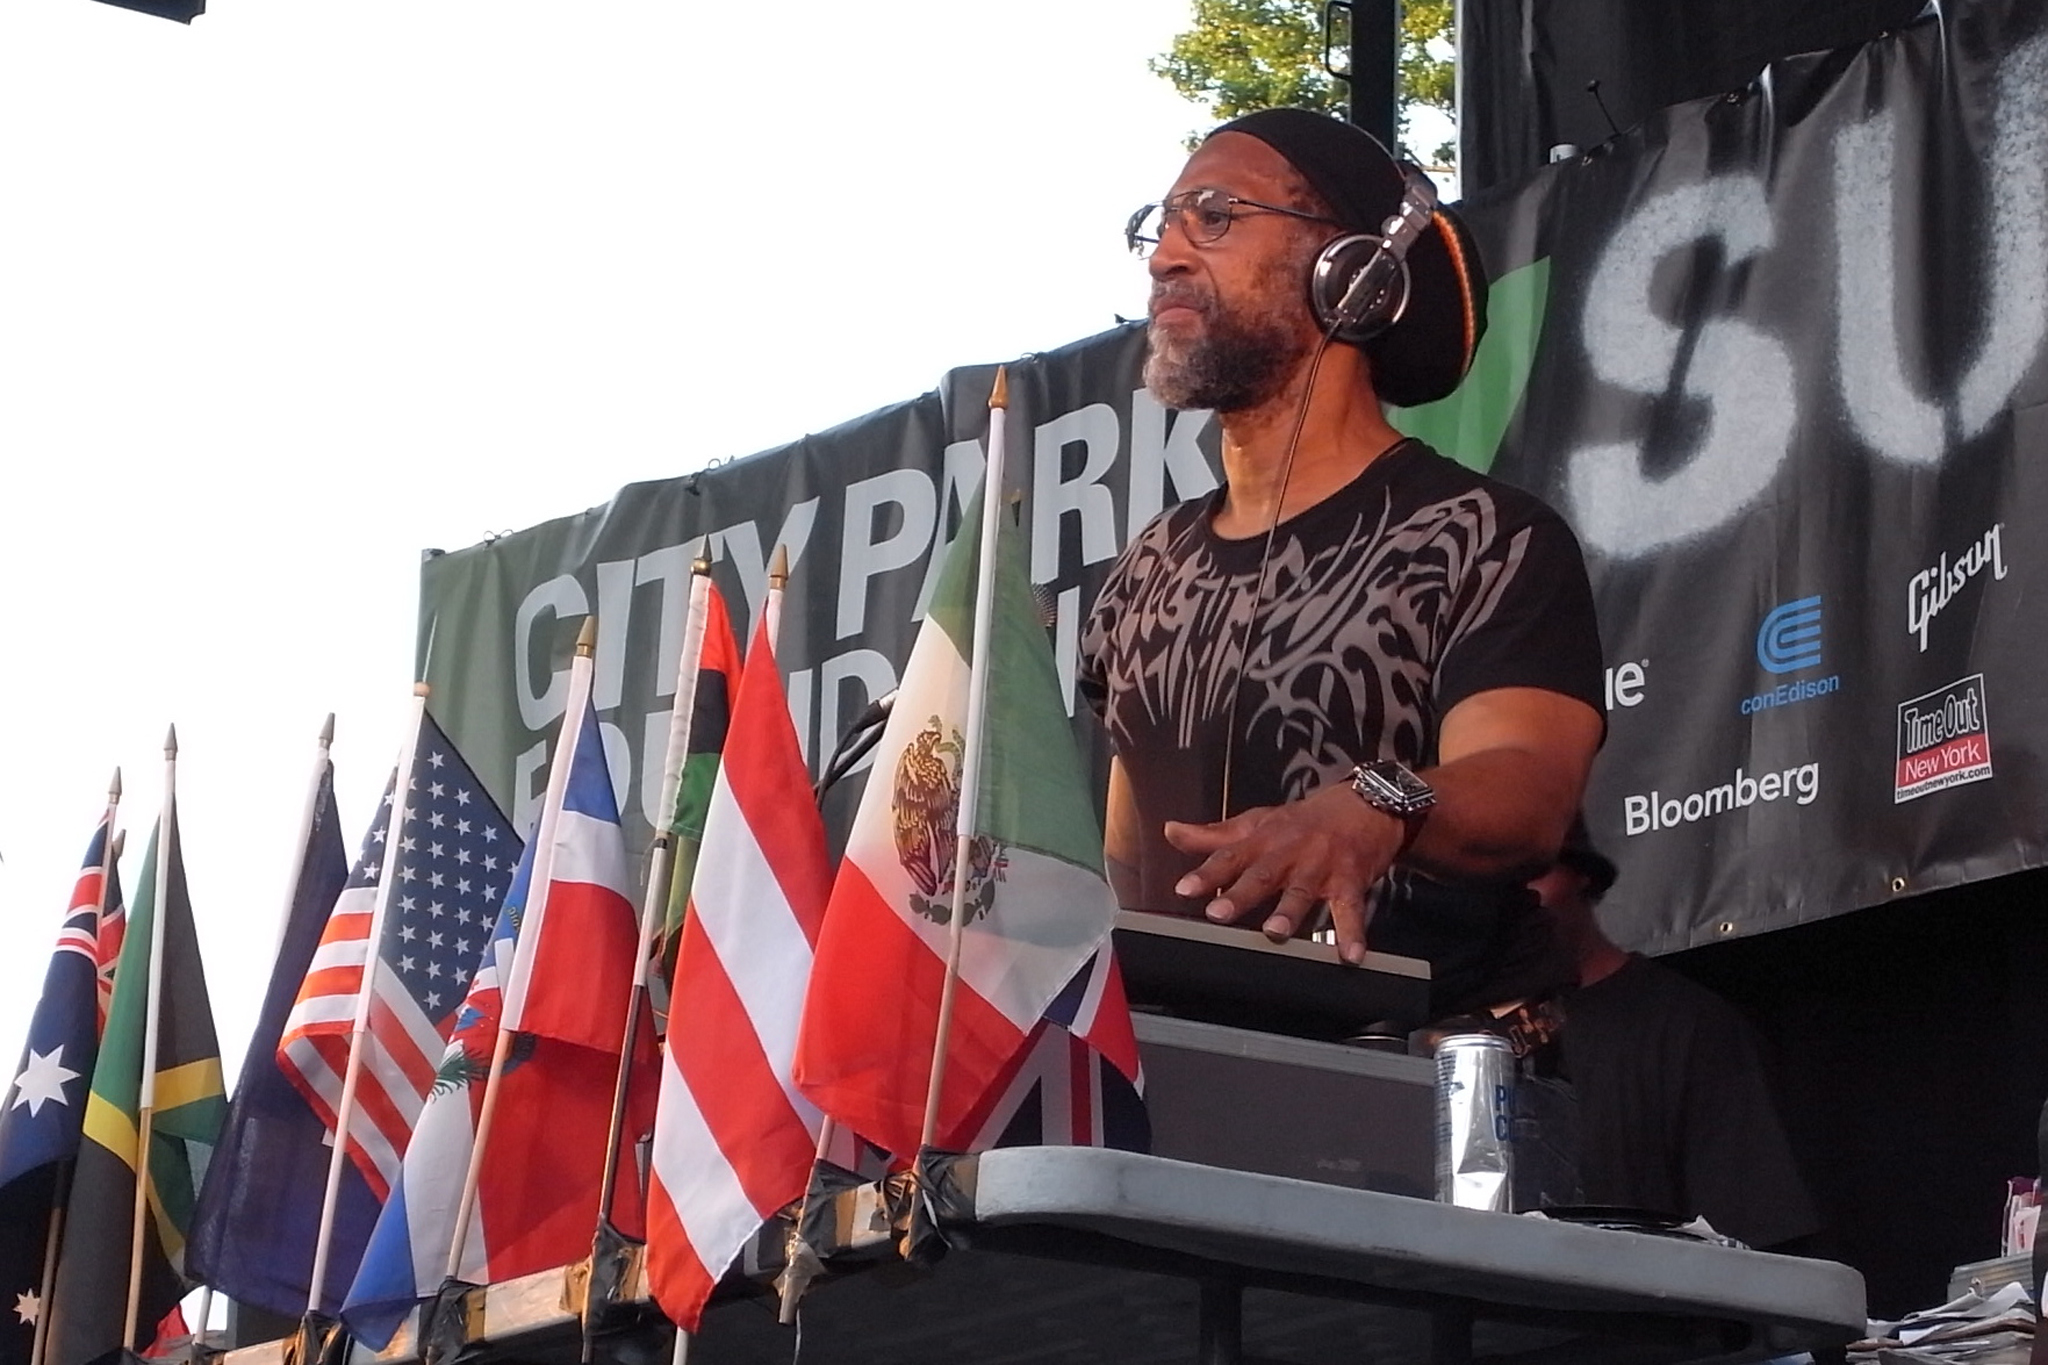 Back to the Roots: Kool Herc at 5 Pointz